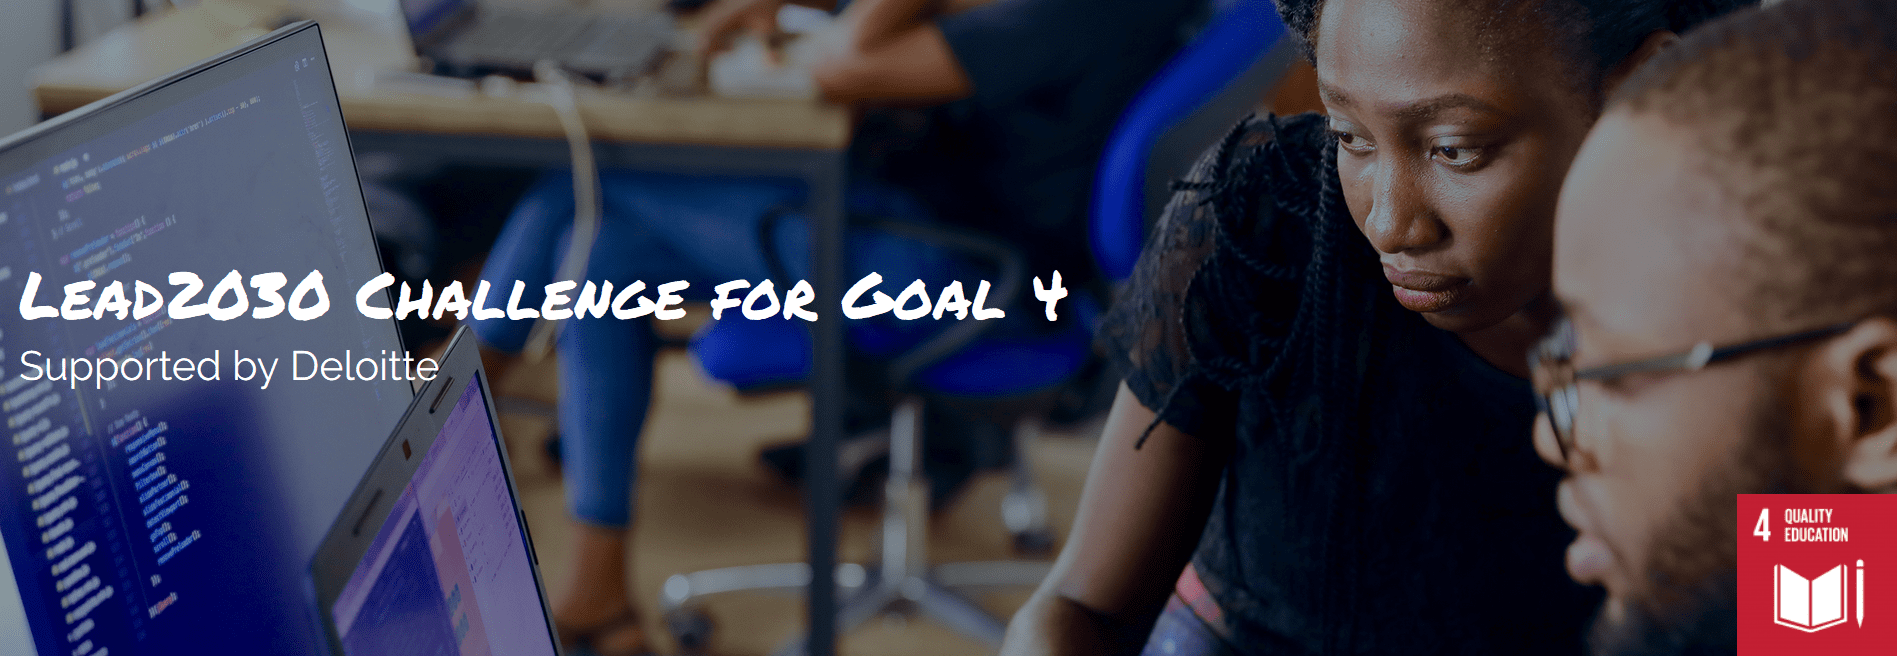 One Young World/Deloitte Lead 2030 Obstacle for SDG Objective 4 ($ USD 50,000 grant)